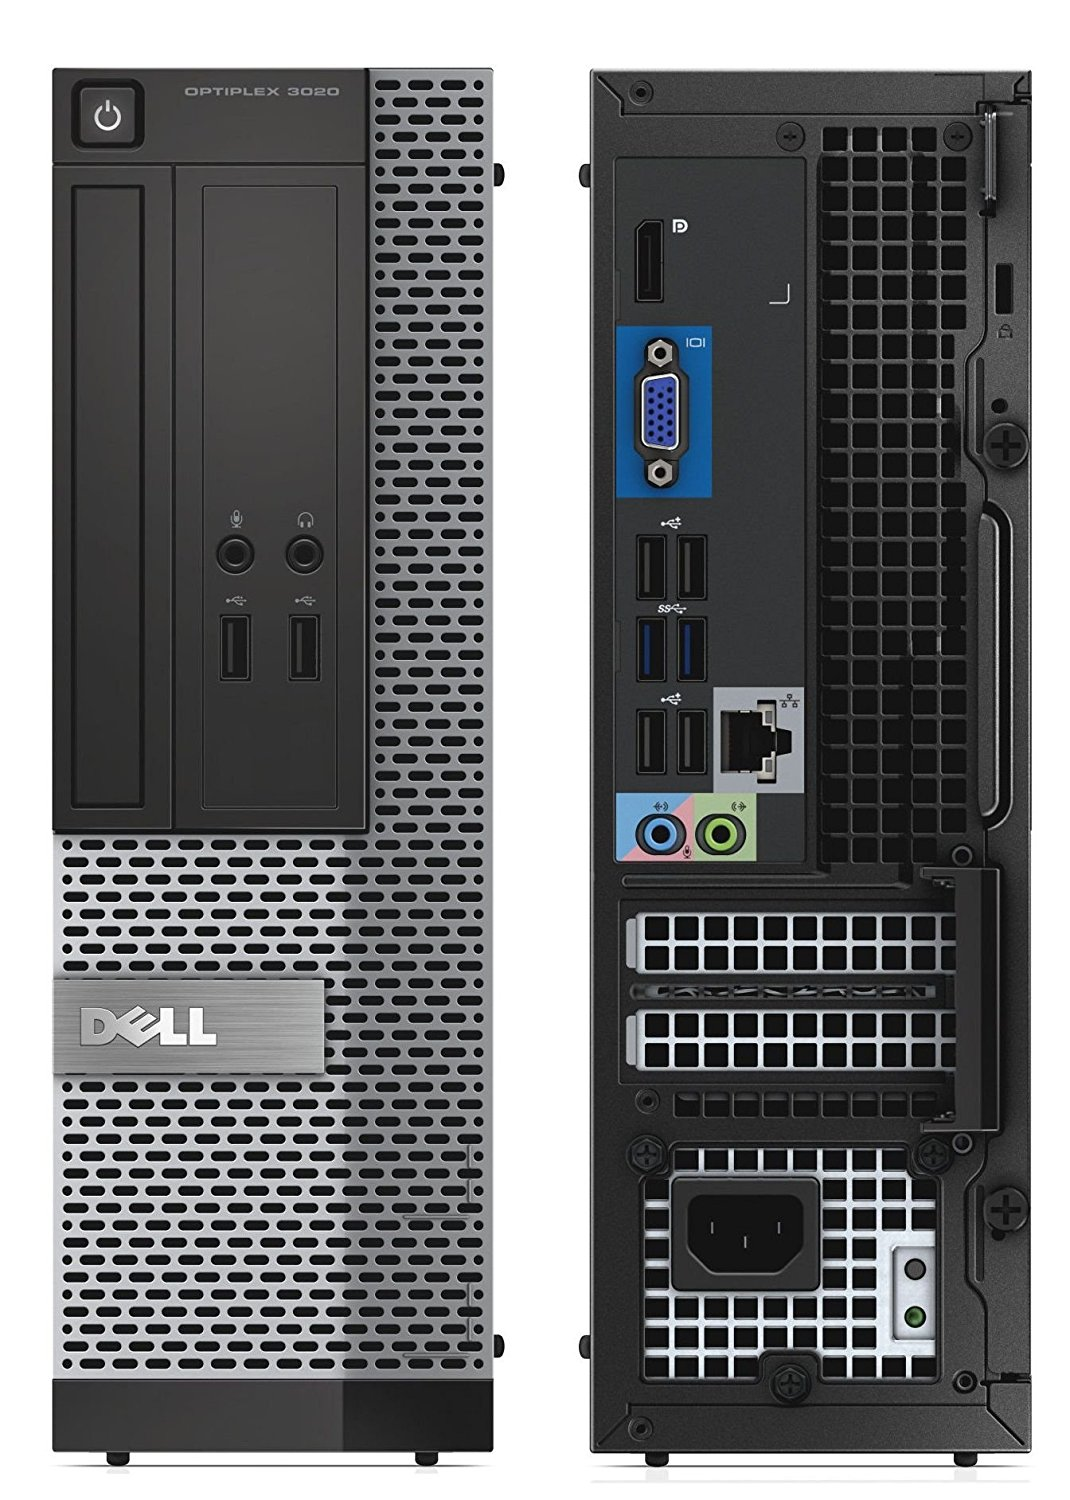 Case Dell Optiplex 3020/7020/9020 SFF, Core I5 thế hệ 4, 4Gb, 250GB, USB 3.0